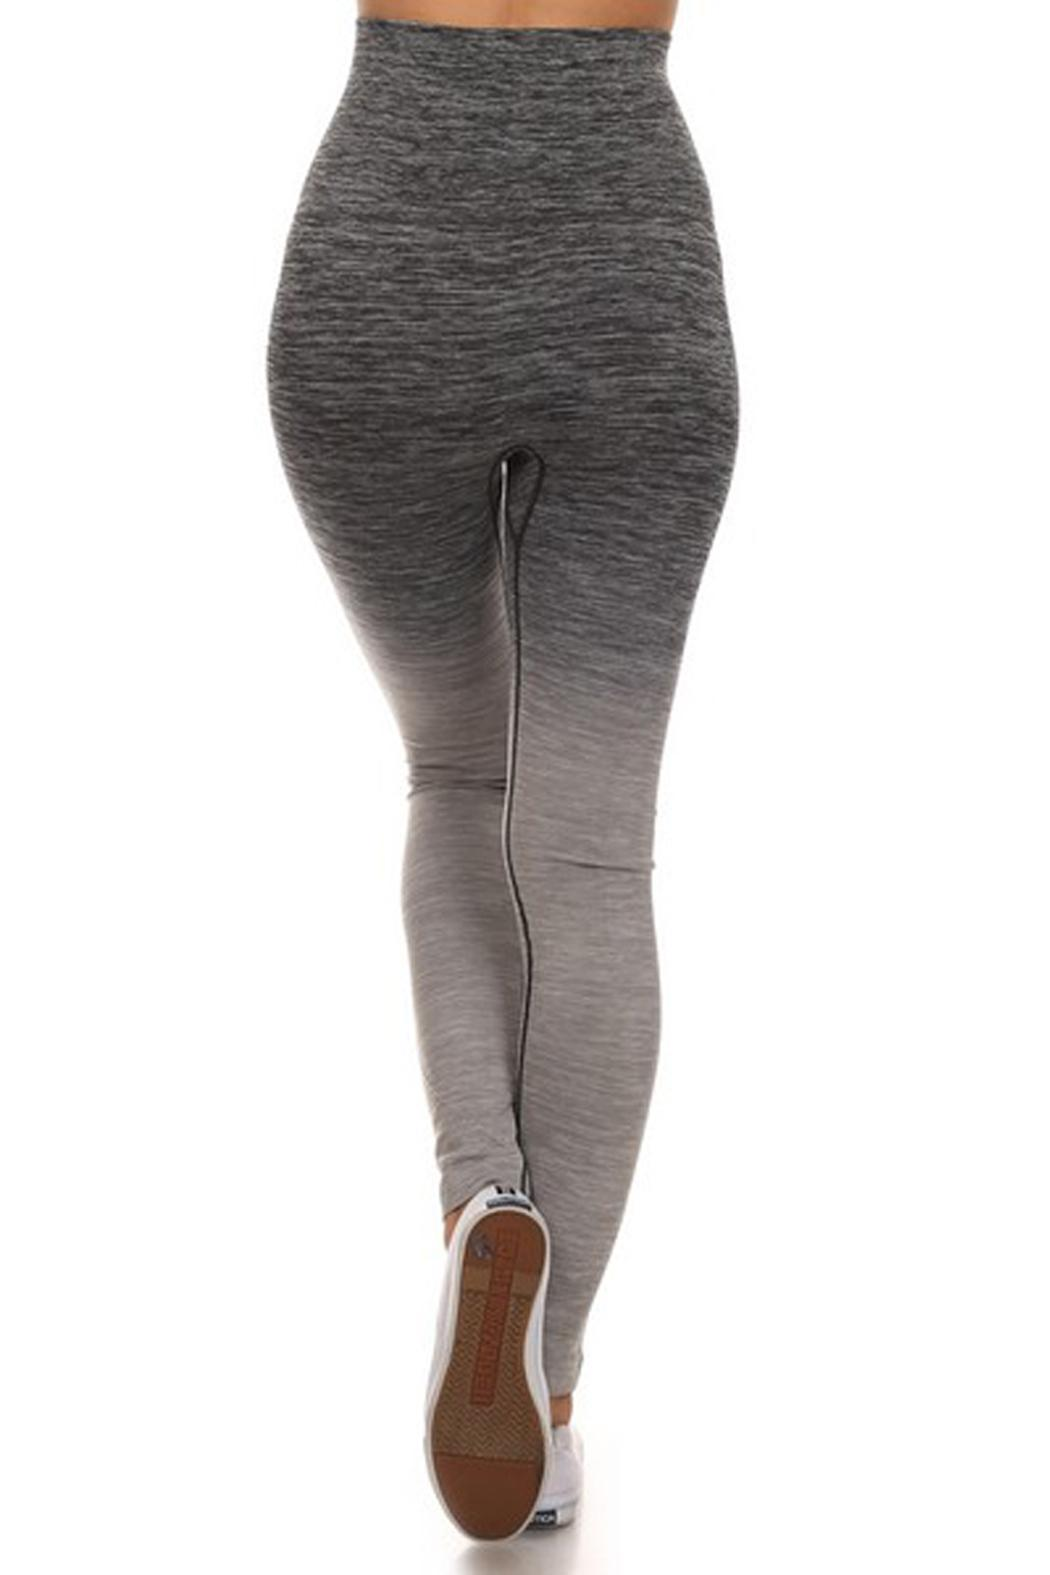 JChronicles Athleisure Legging Pants - Side Cropped Image